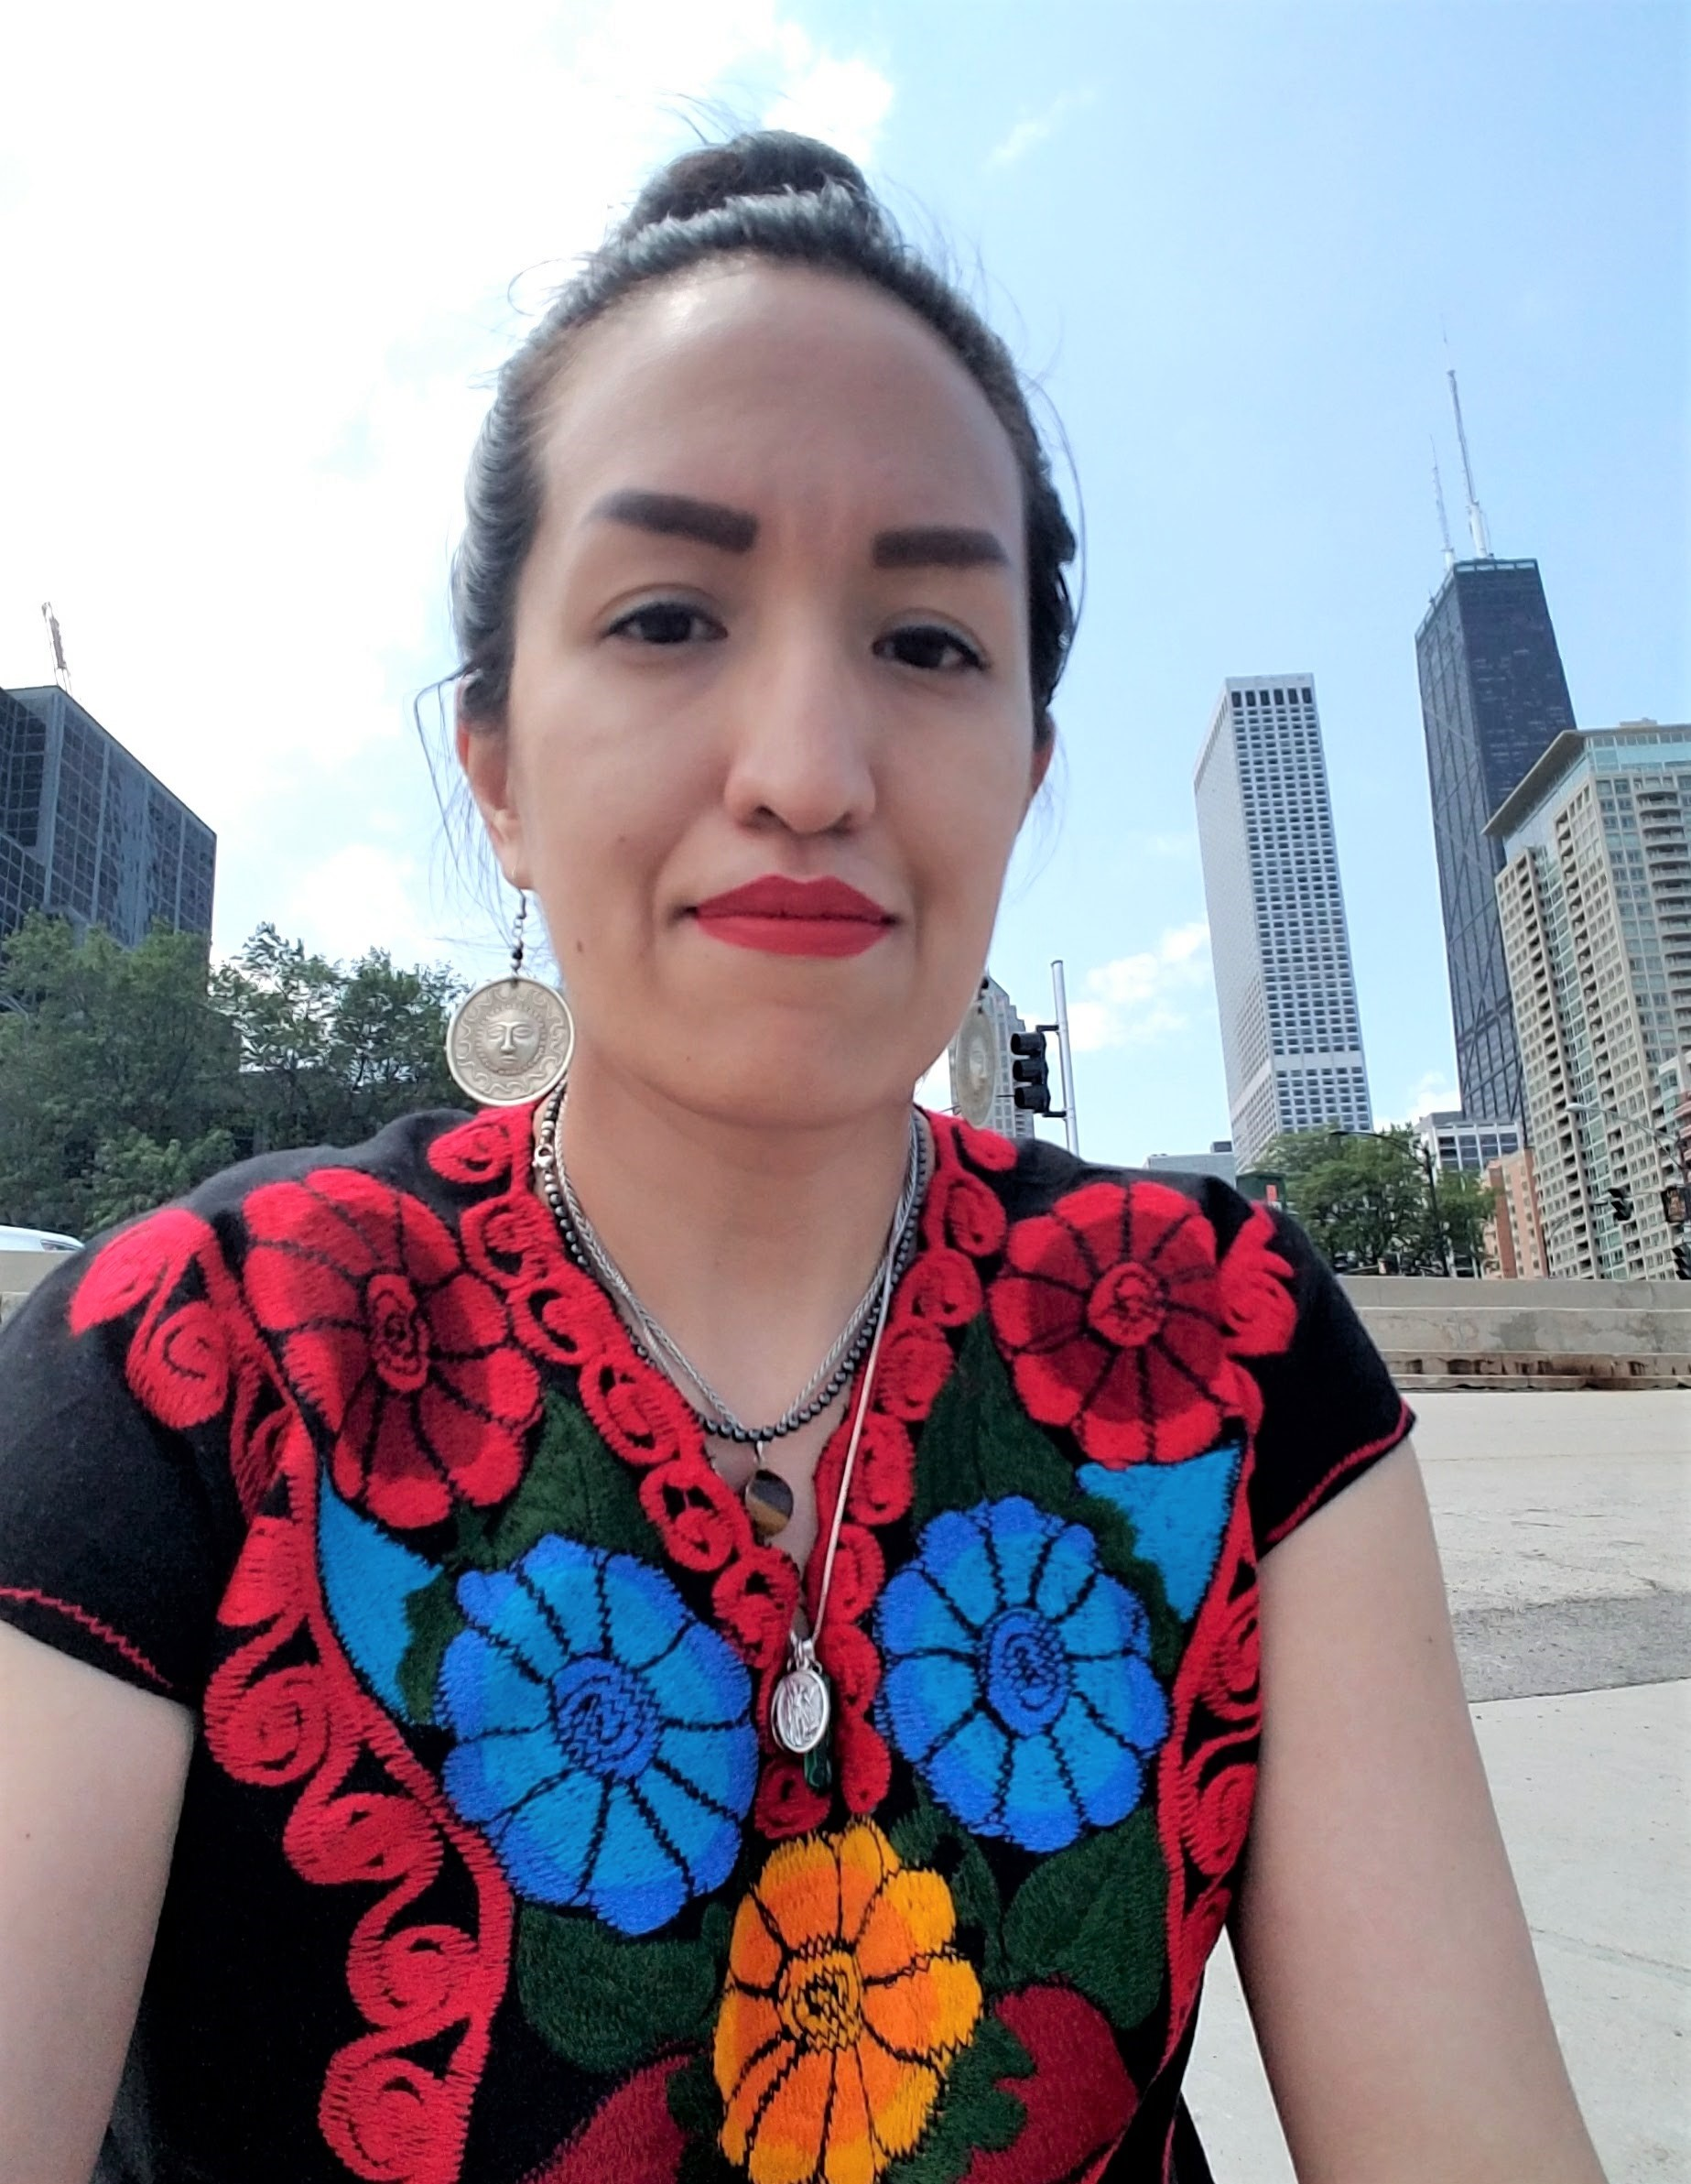 Gladys Carillo - (@CraftyPalette) is a maker and Reiki practitioner who is based in Chicago. She enjoys exploring different creative avenues, with preference for making clothing and visual art. Her work has been featured at the National Museum of Mexican Art.